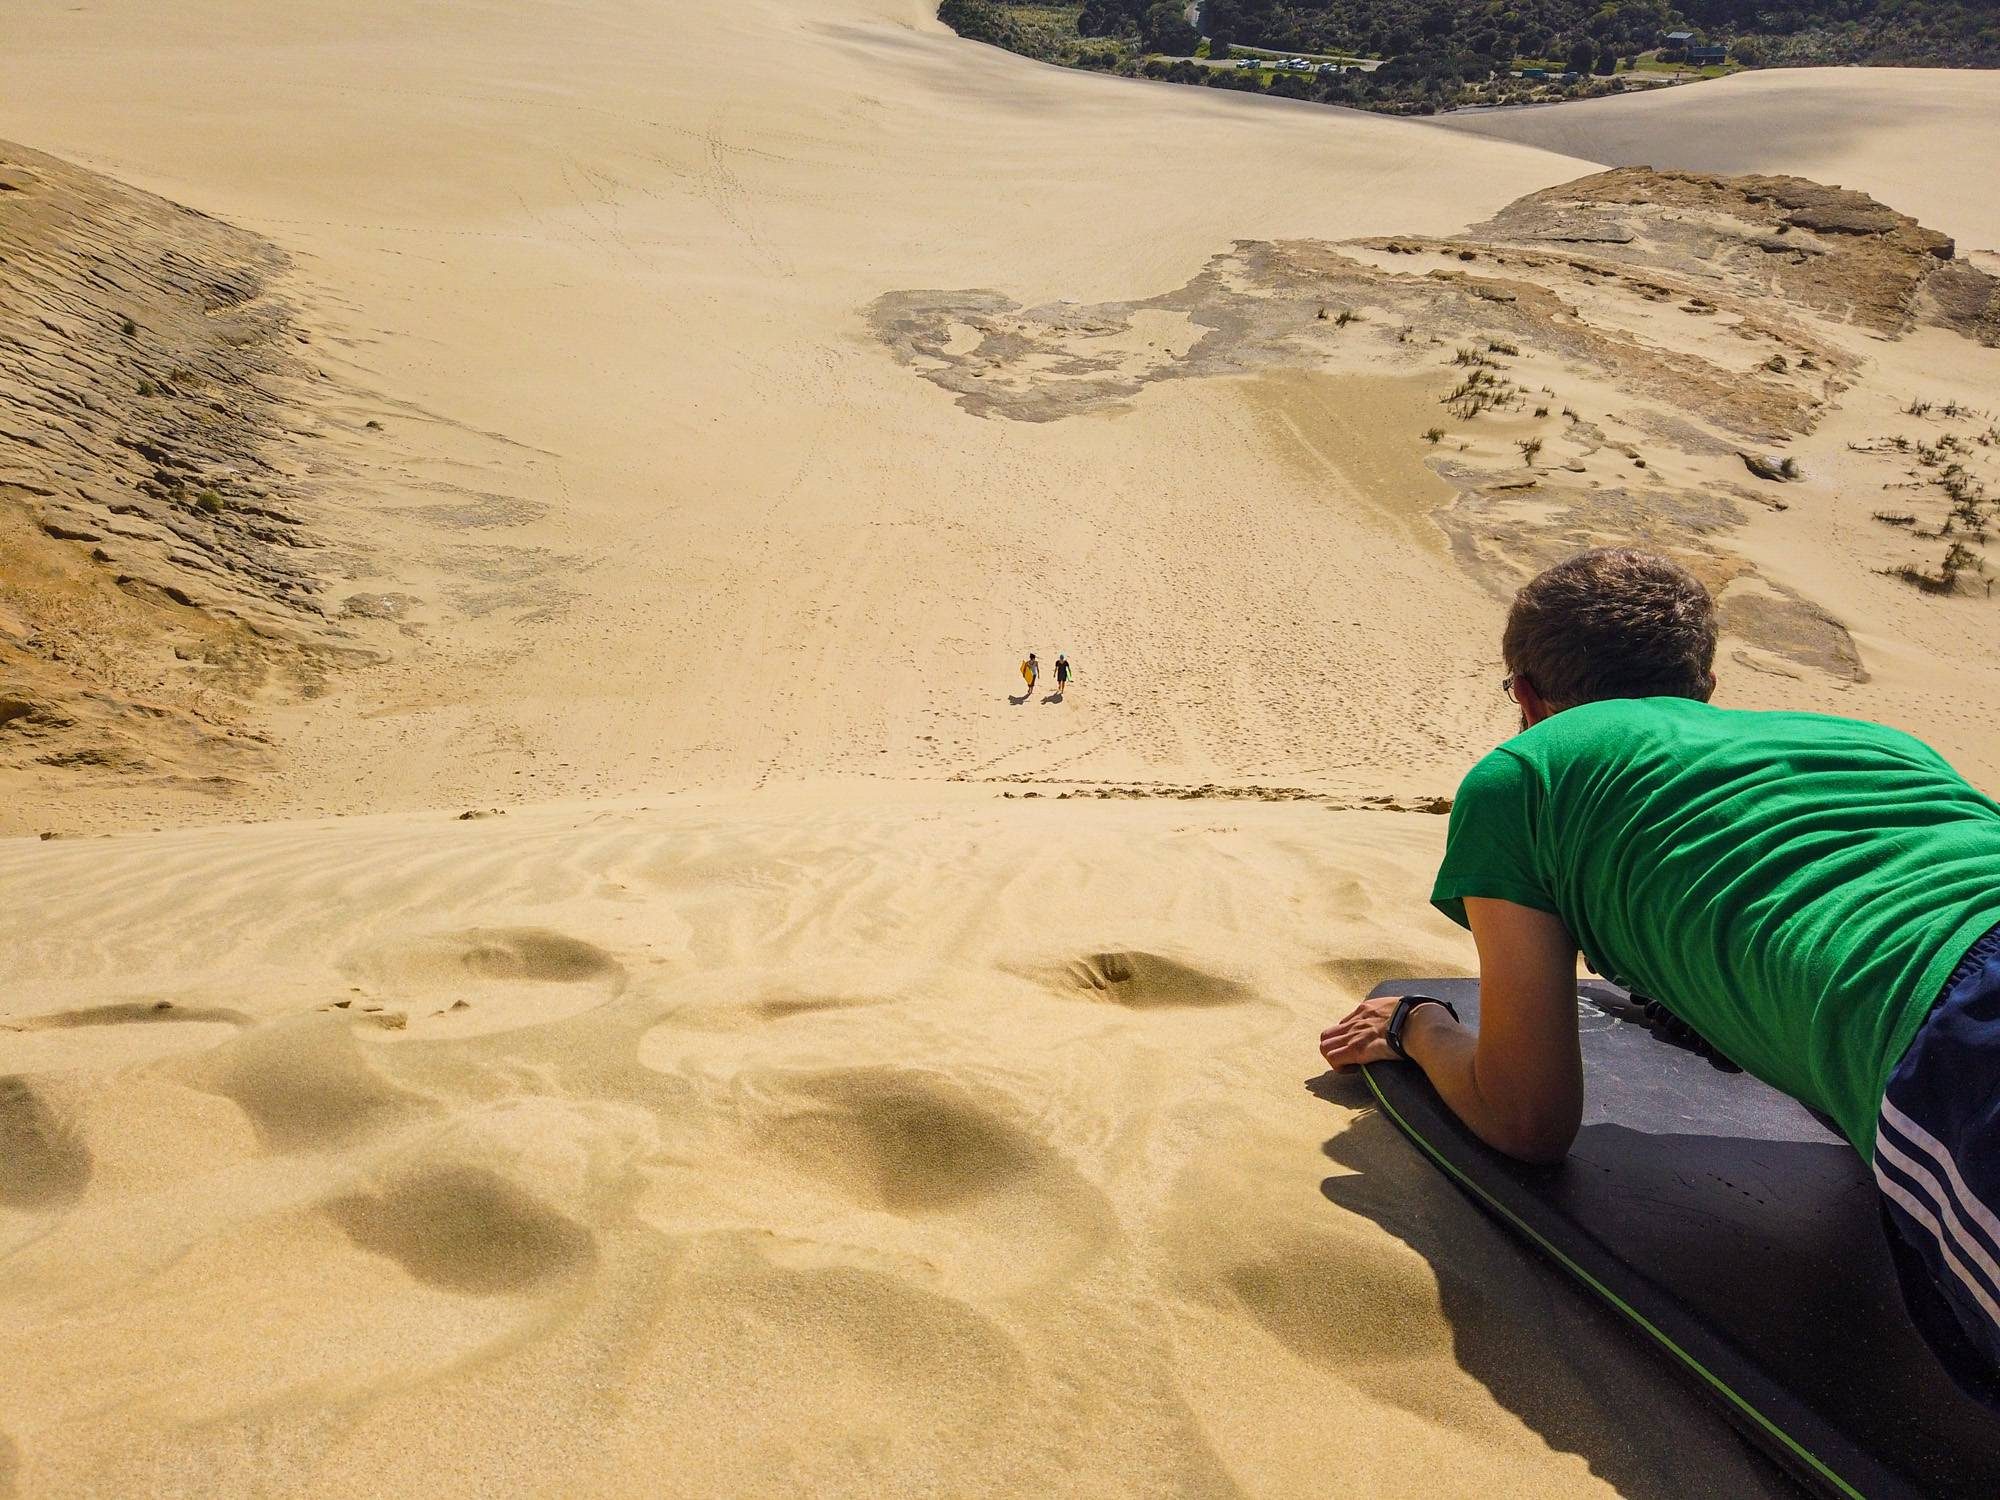 Experience Sand surfing in New Zealand - backpacking tips